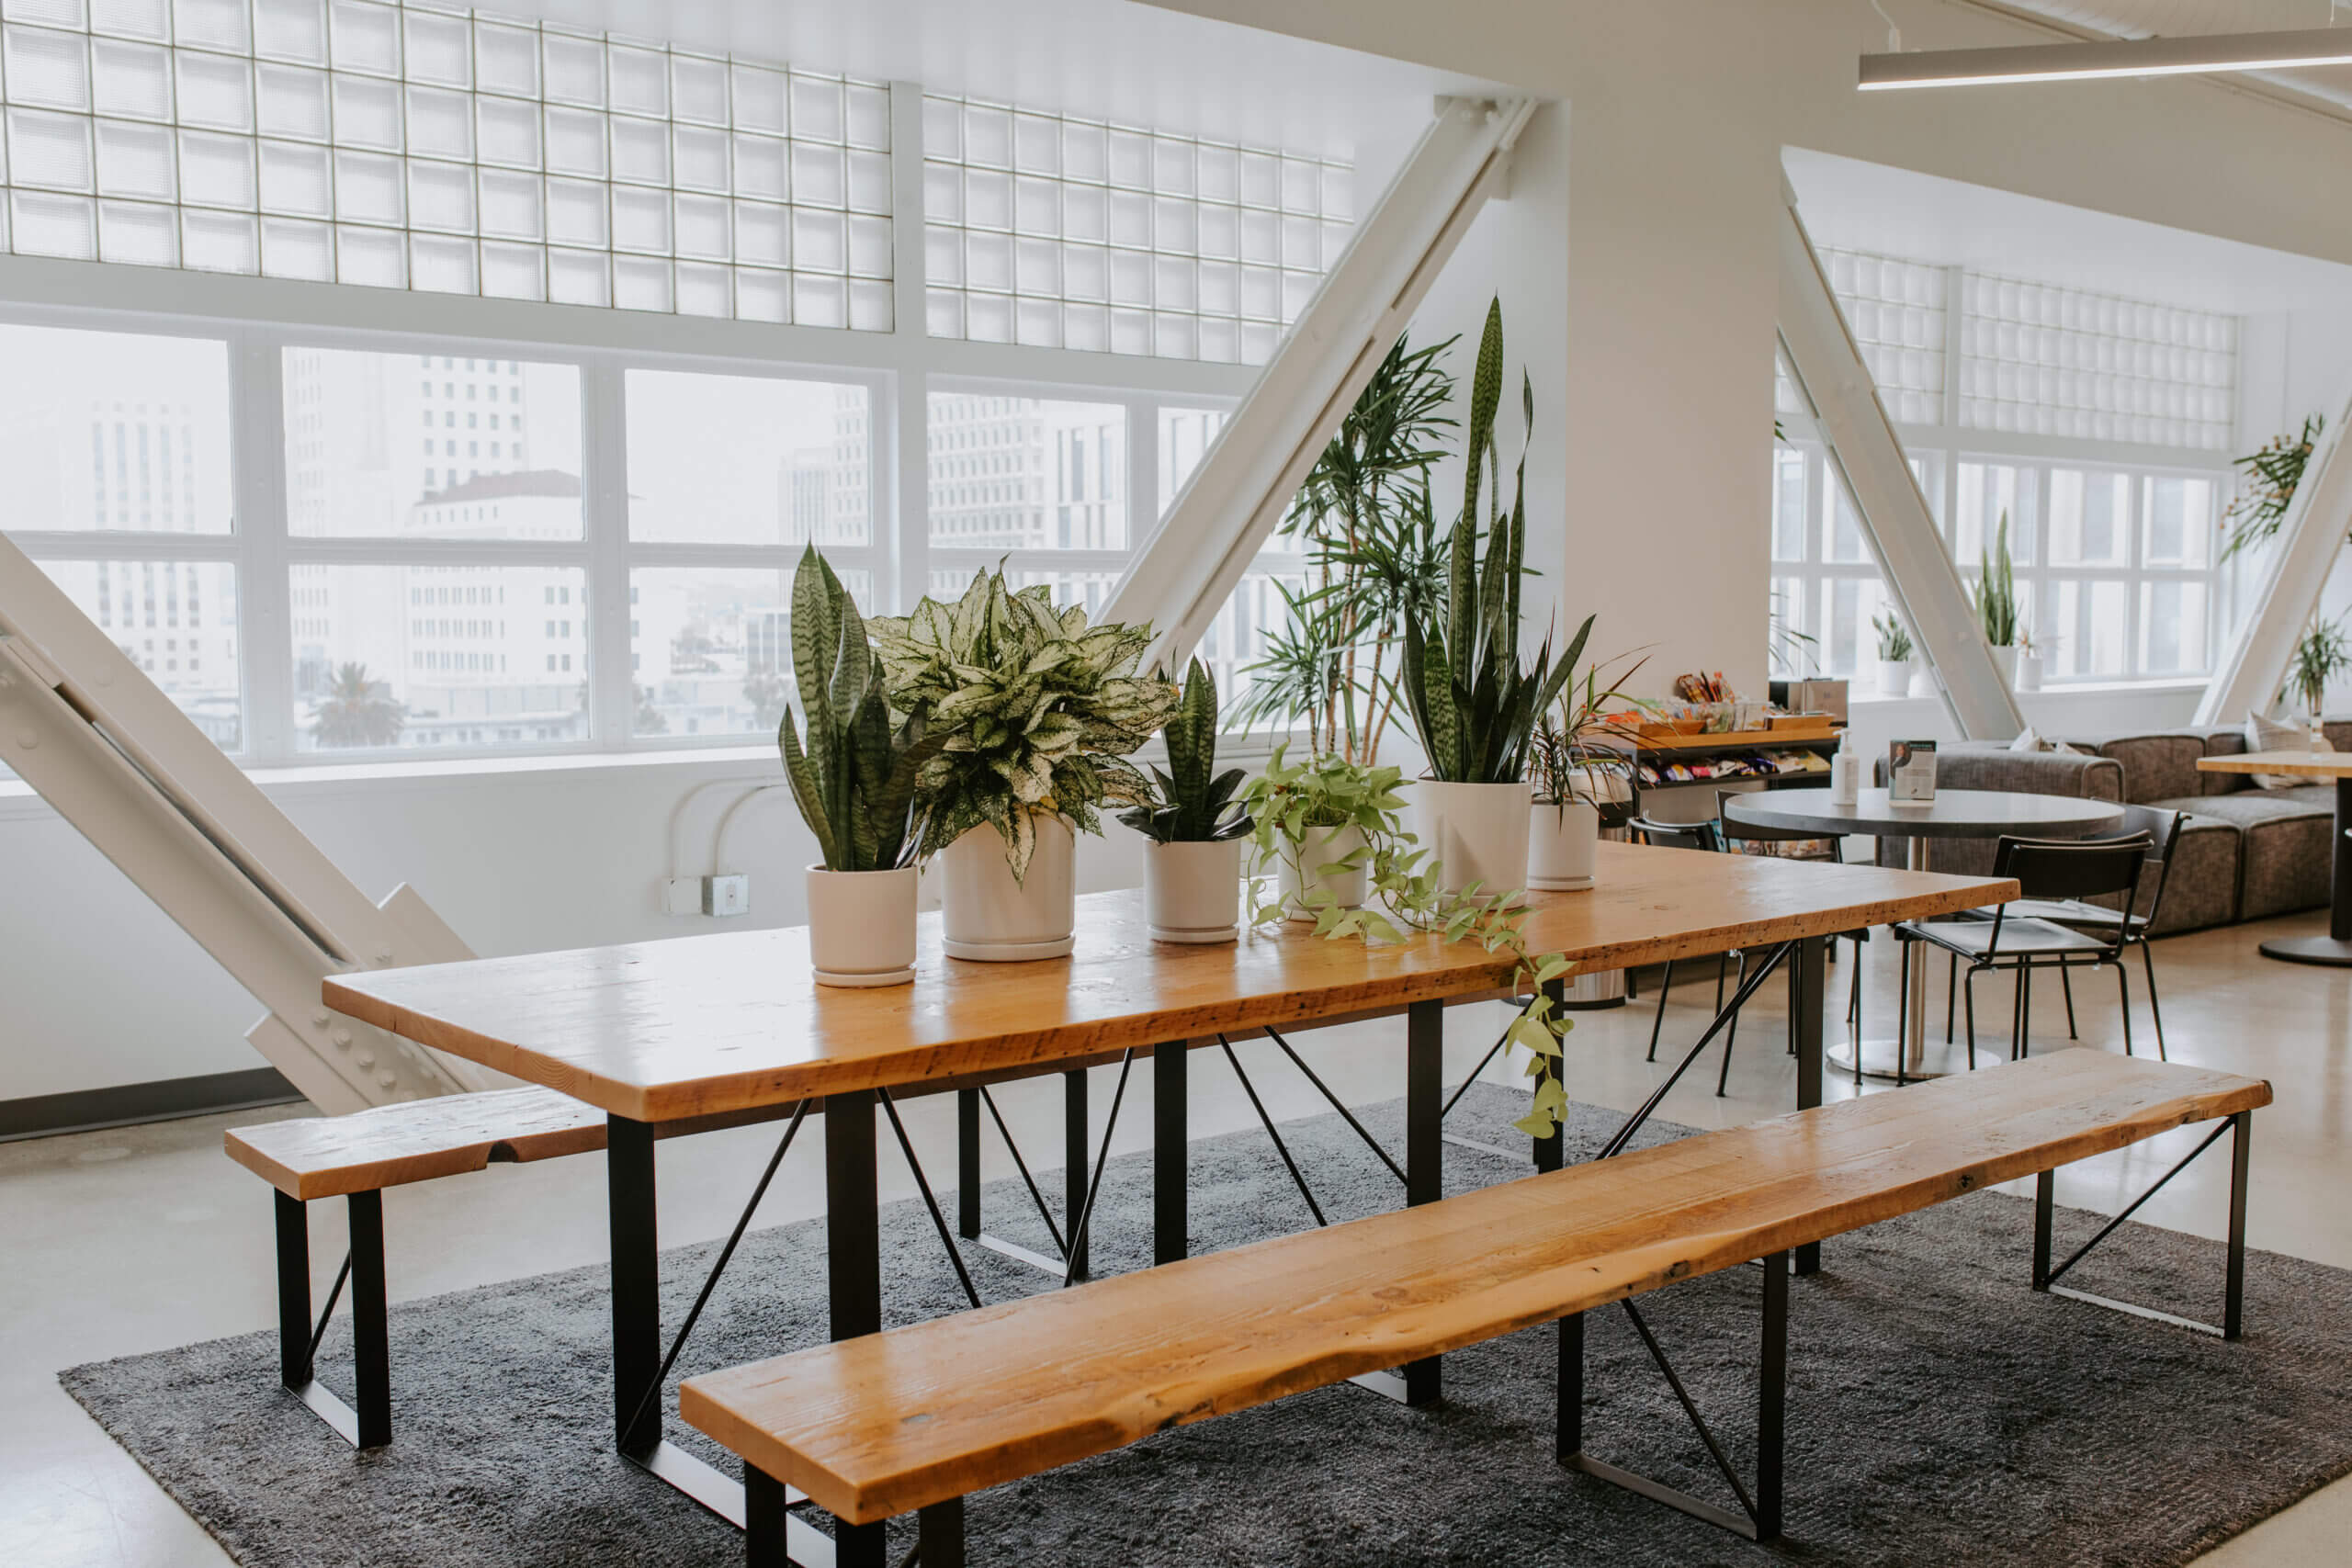 Justice HQ DTLA community space with window view